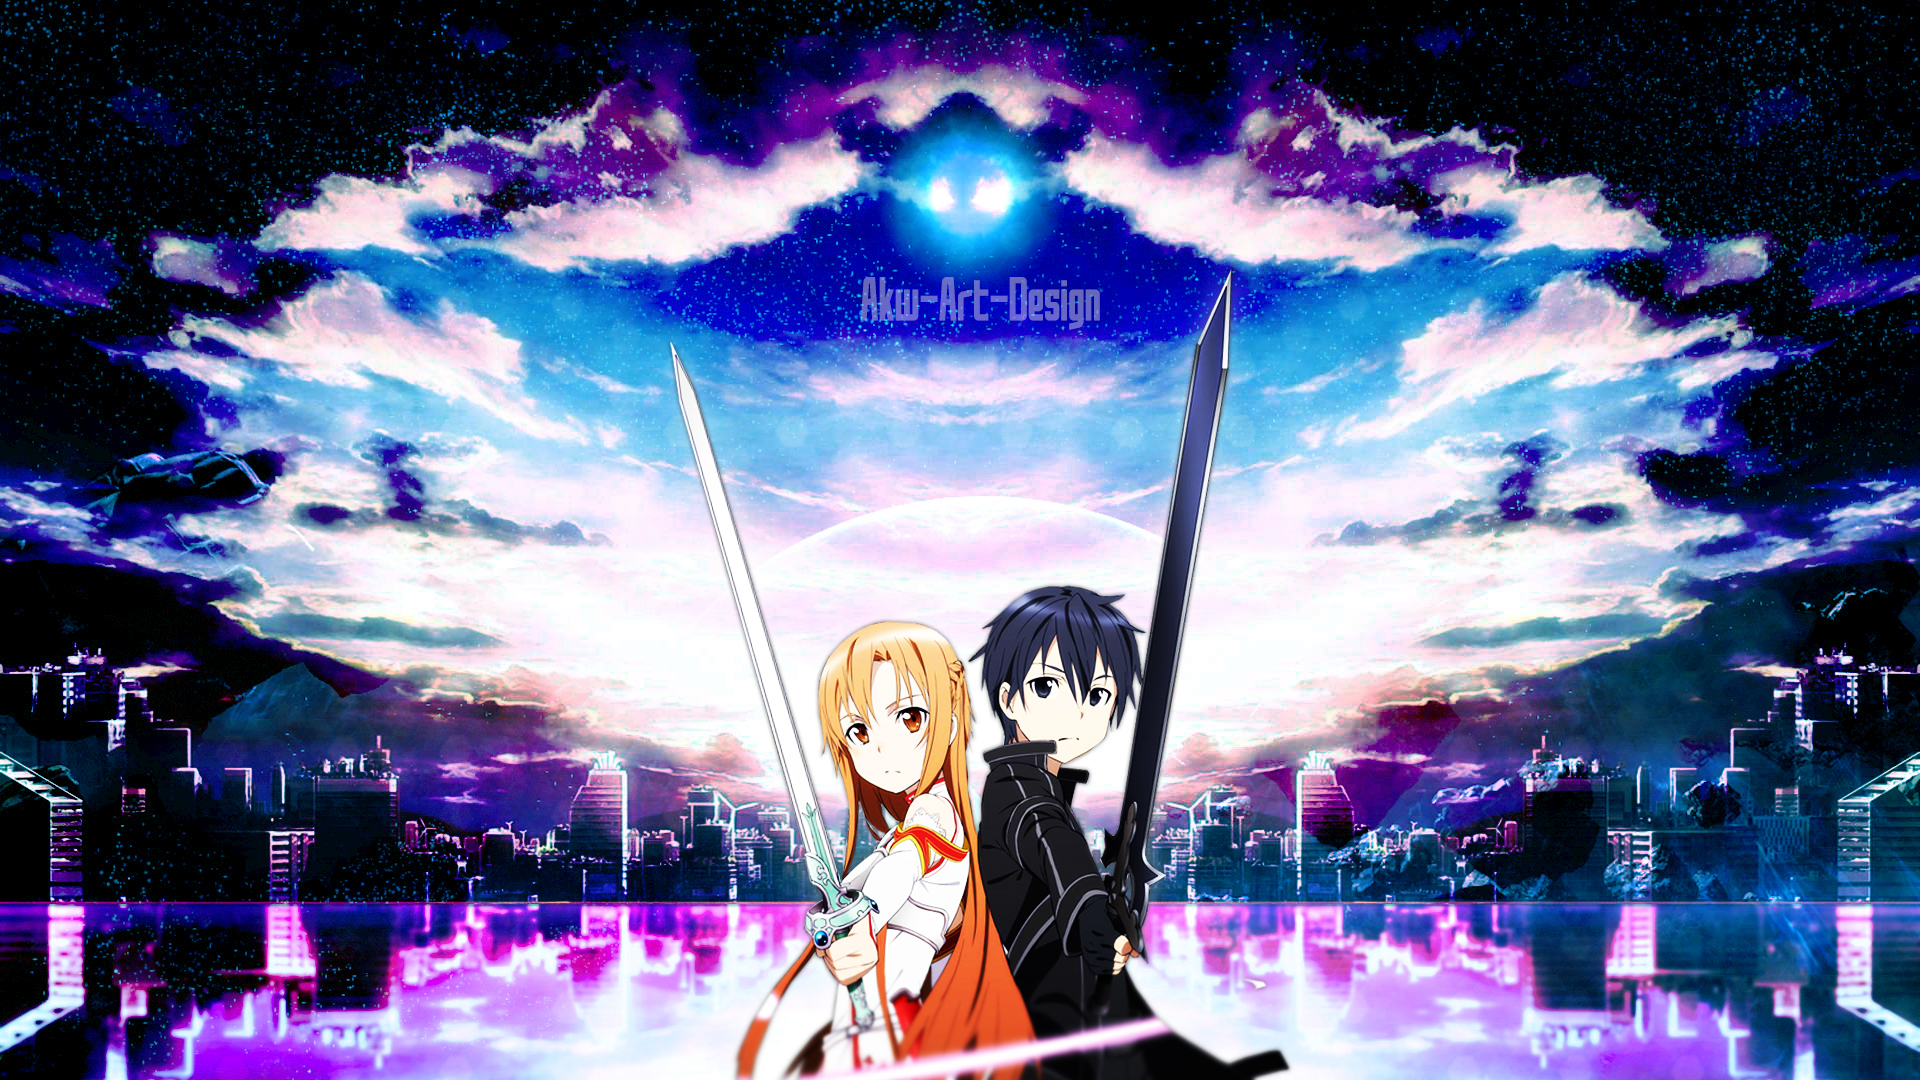 Sword Art Online Asuna X Kirito By Akw Design